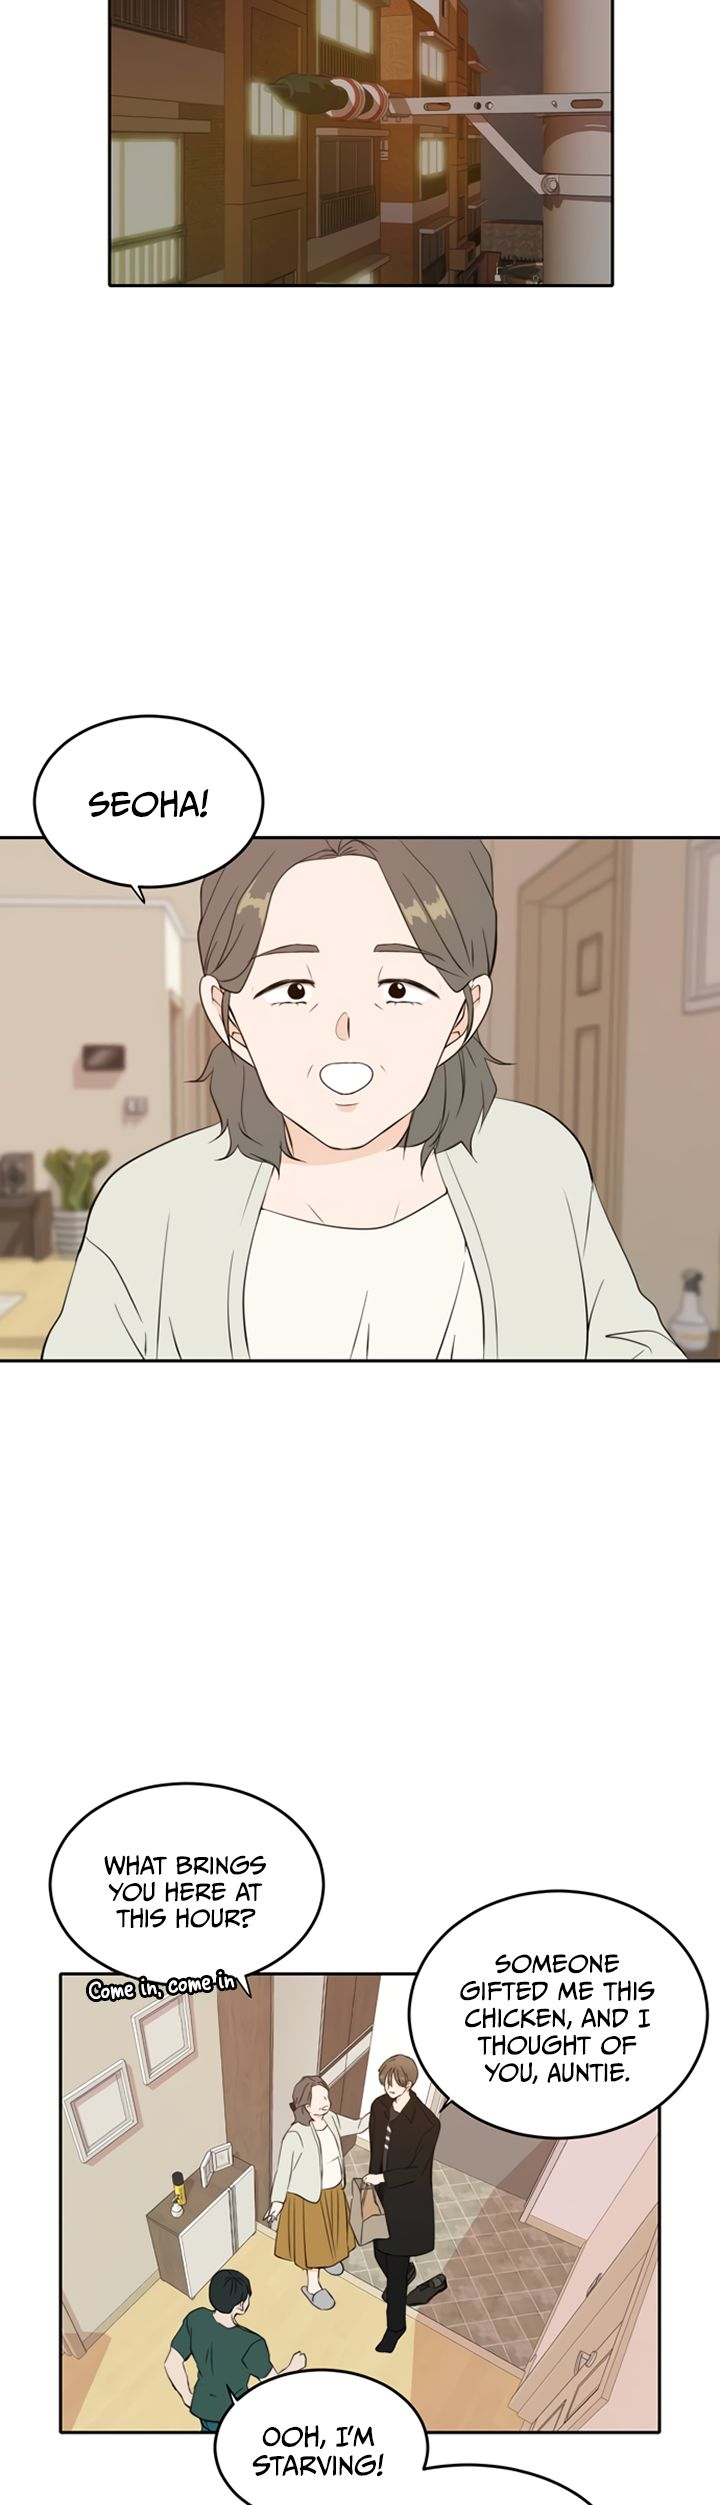 Please Take Care Of Me In This Life As Well - chapter 26 - #2